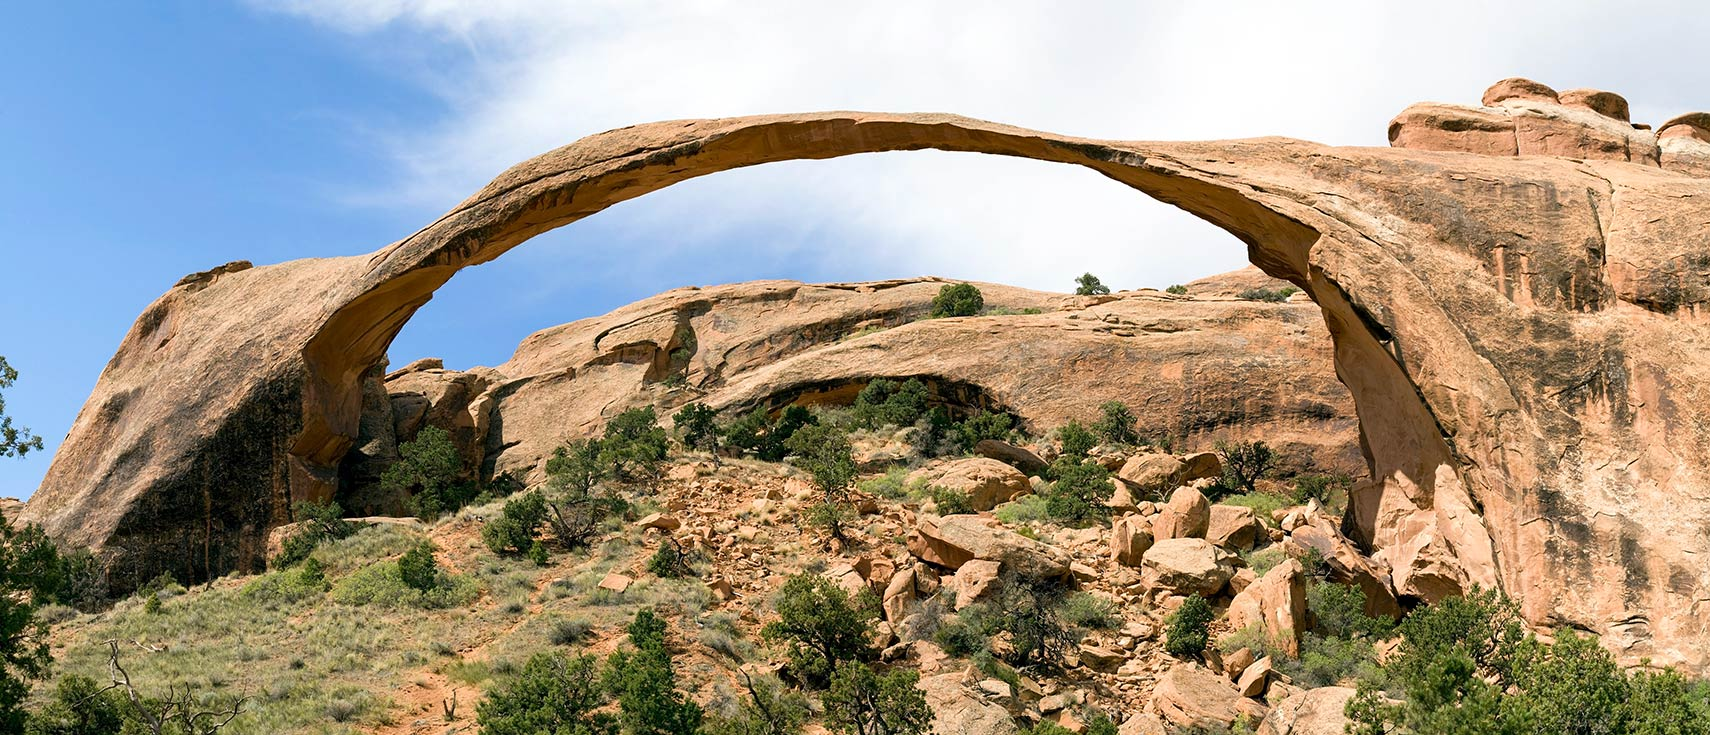 Landscape Arch in the Arches National Park